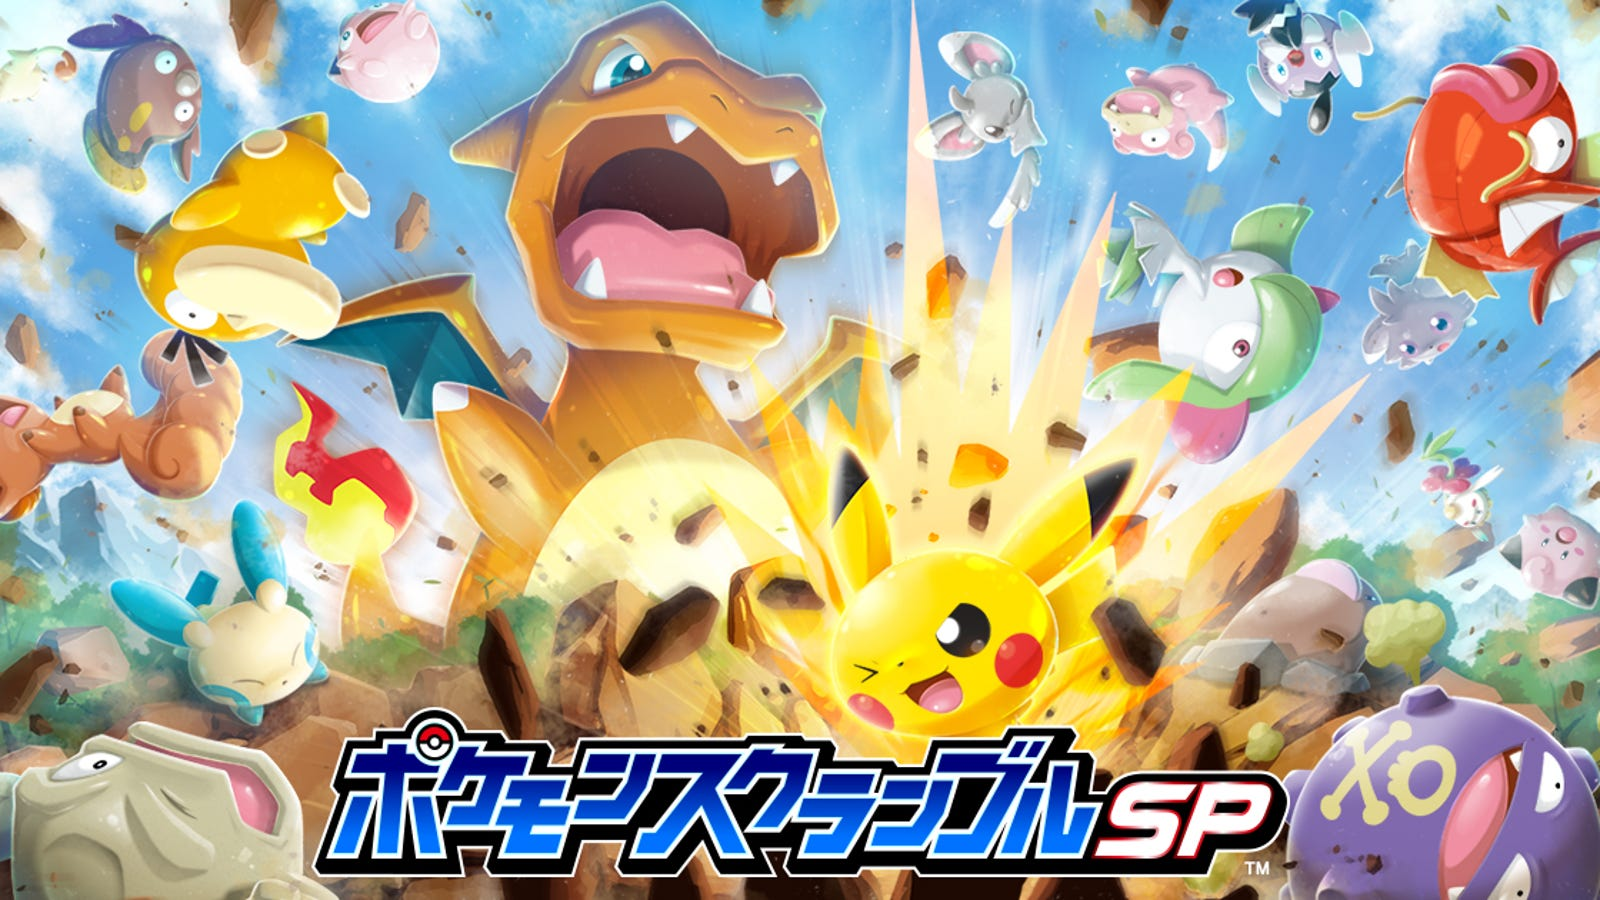 Pokémon Rumble Rush Is Heading To iOS And Android